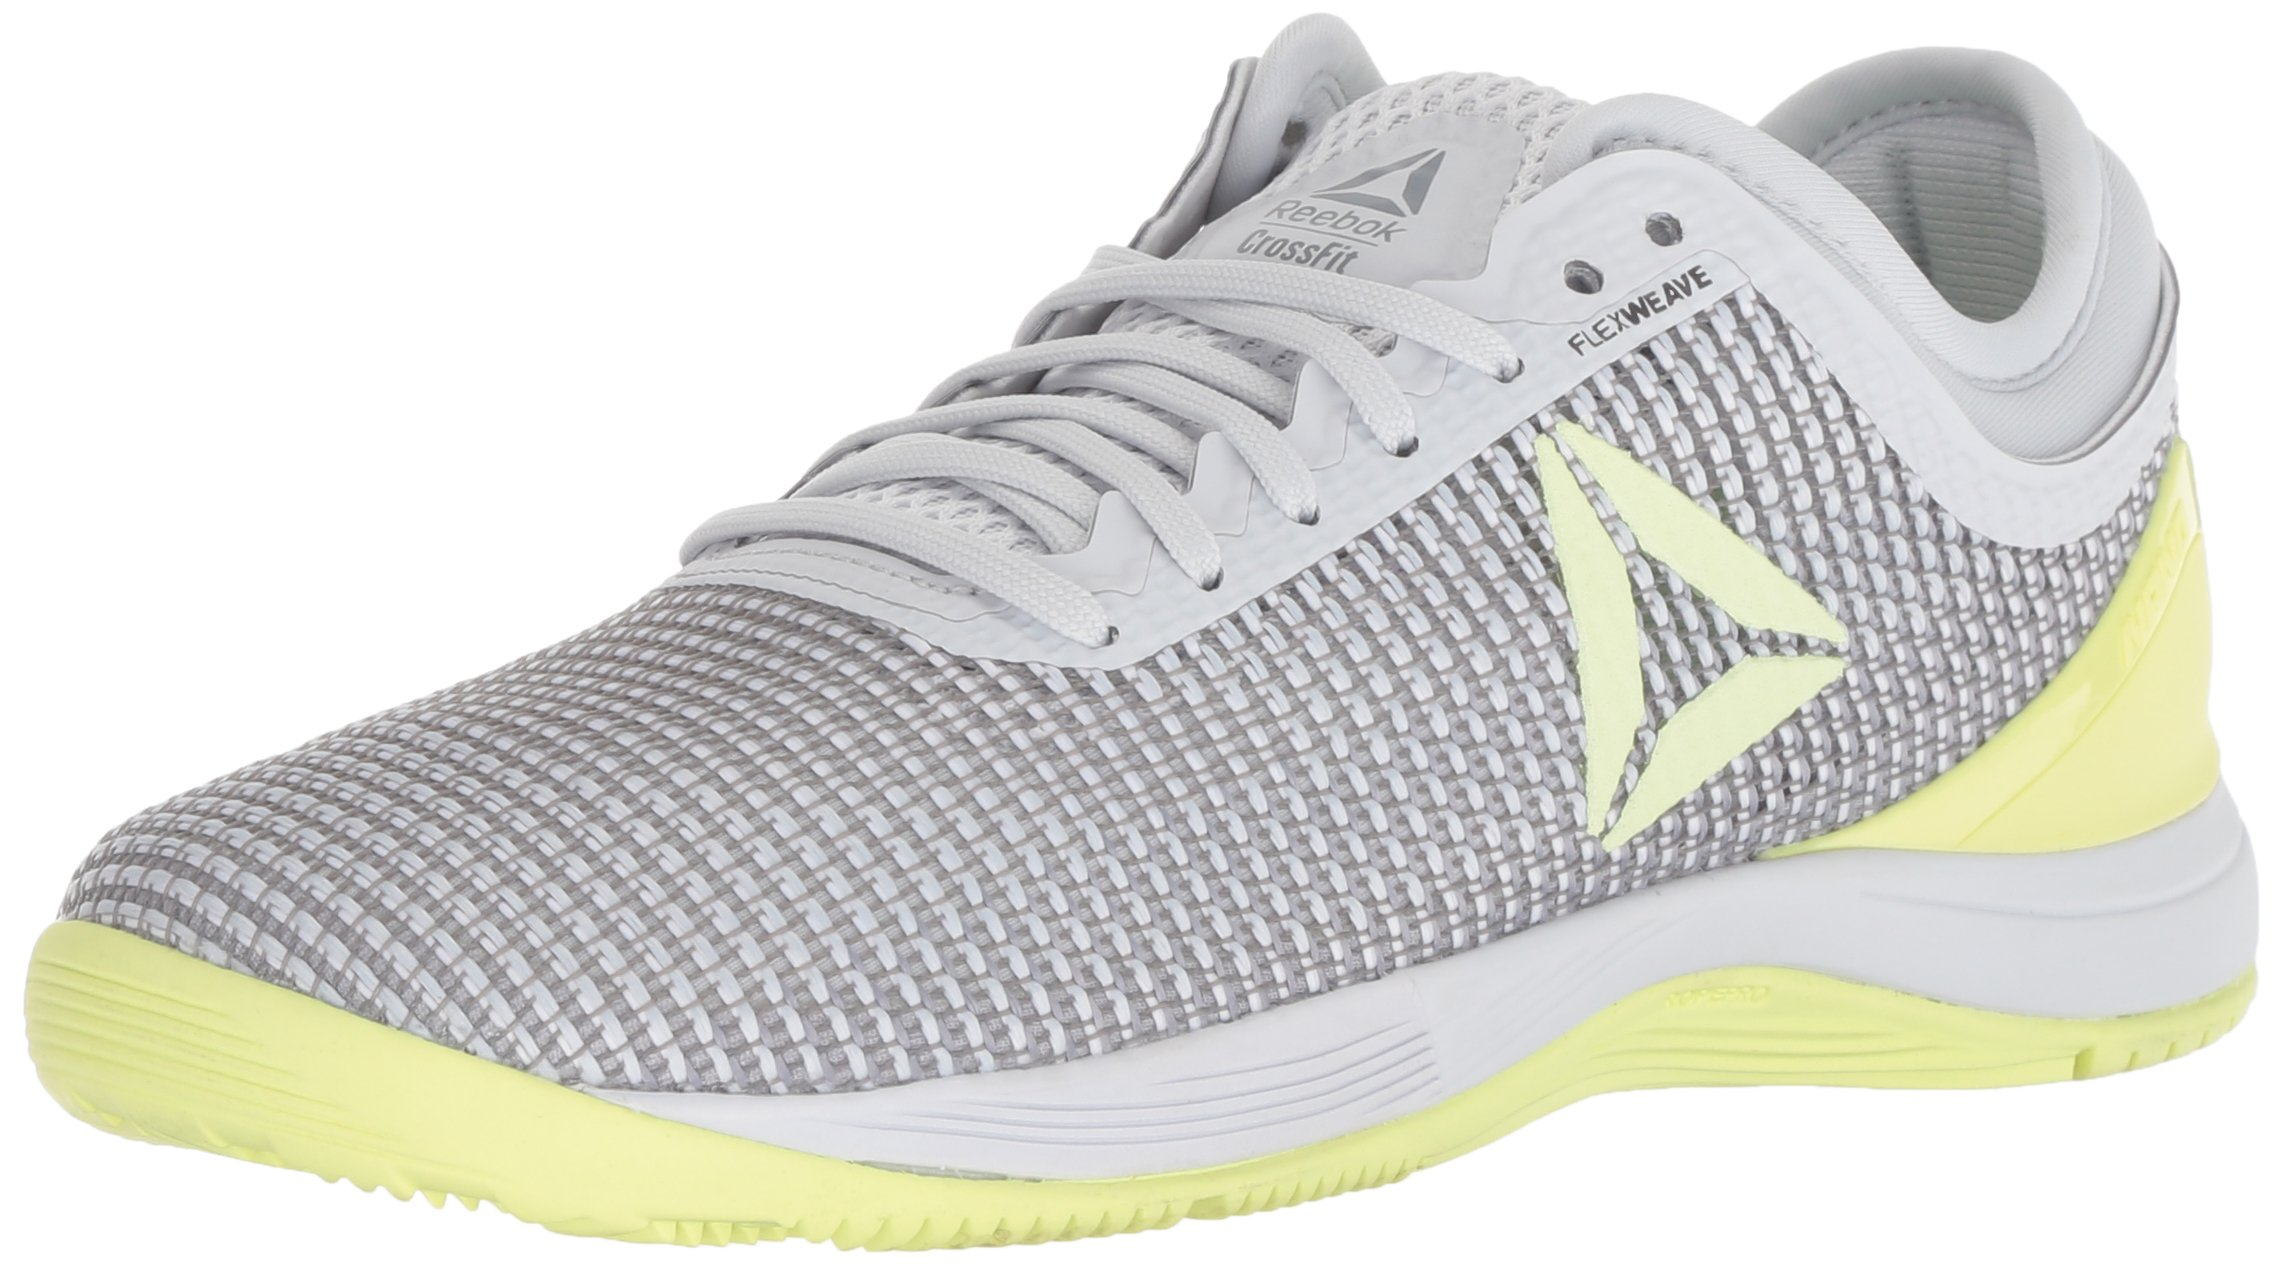 ae2e6ea6bfd Reebok Women s CROSSFIT Nano 8.0 Flexweave Cross Trainer product image